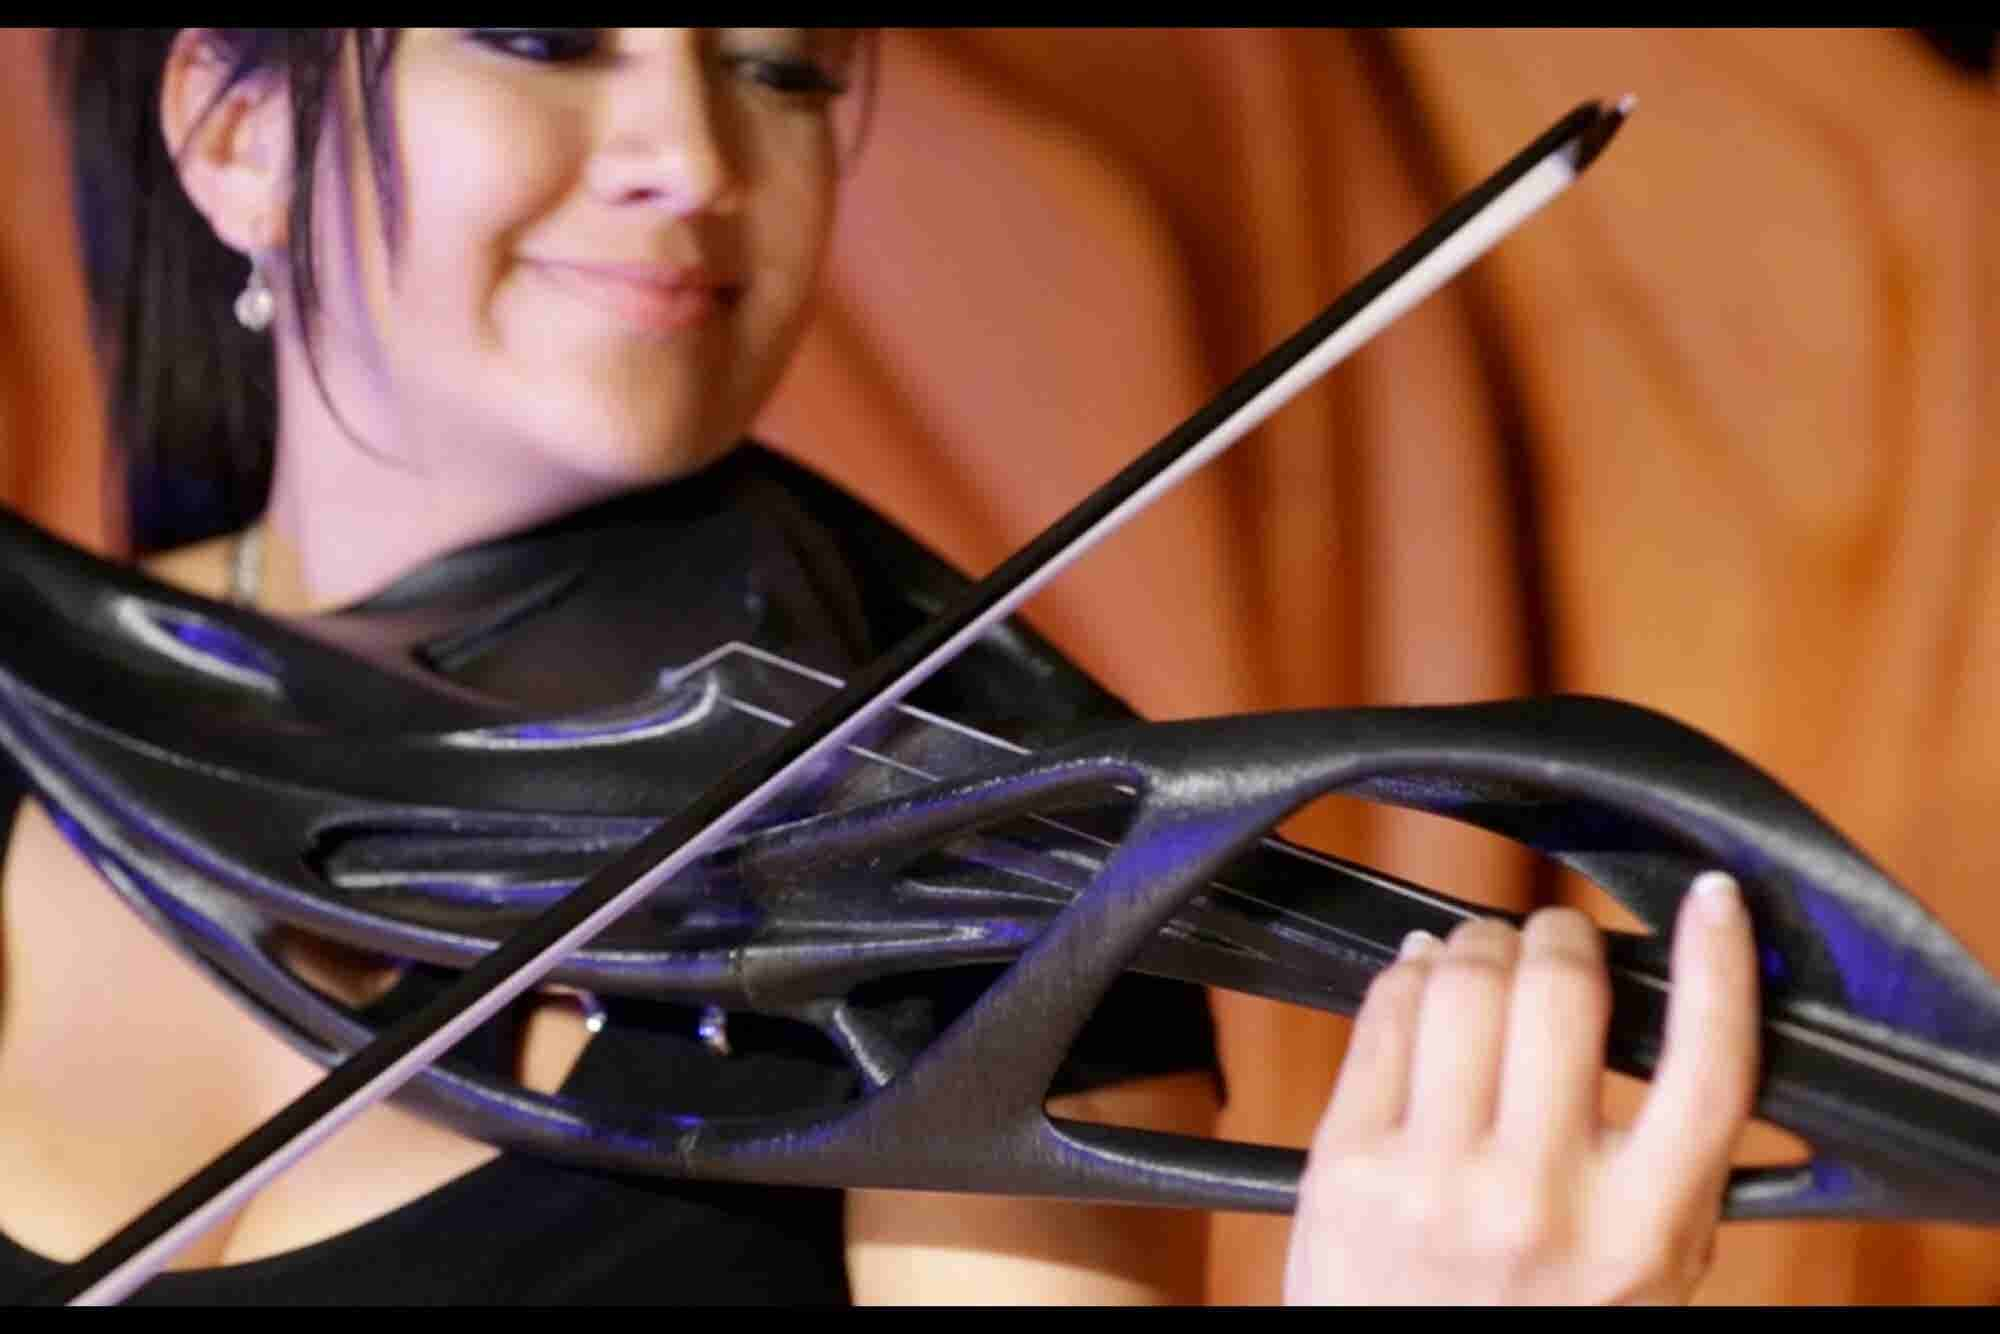 3-D Printed Violins and Guitars Push the Boundaries of Art and Tech